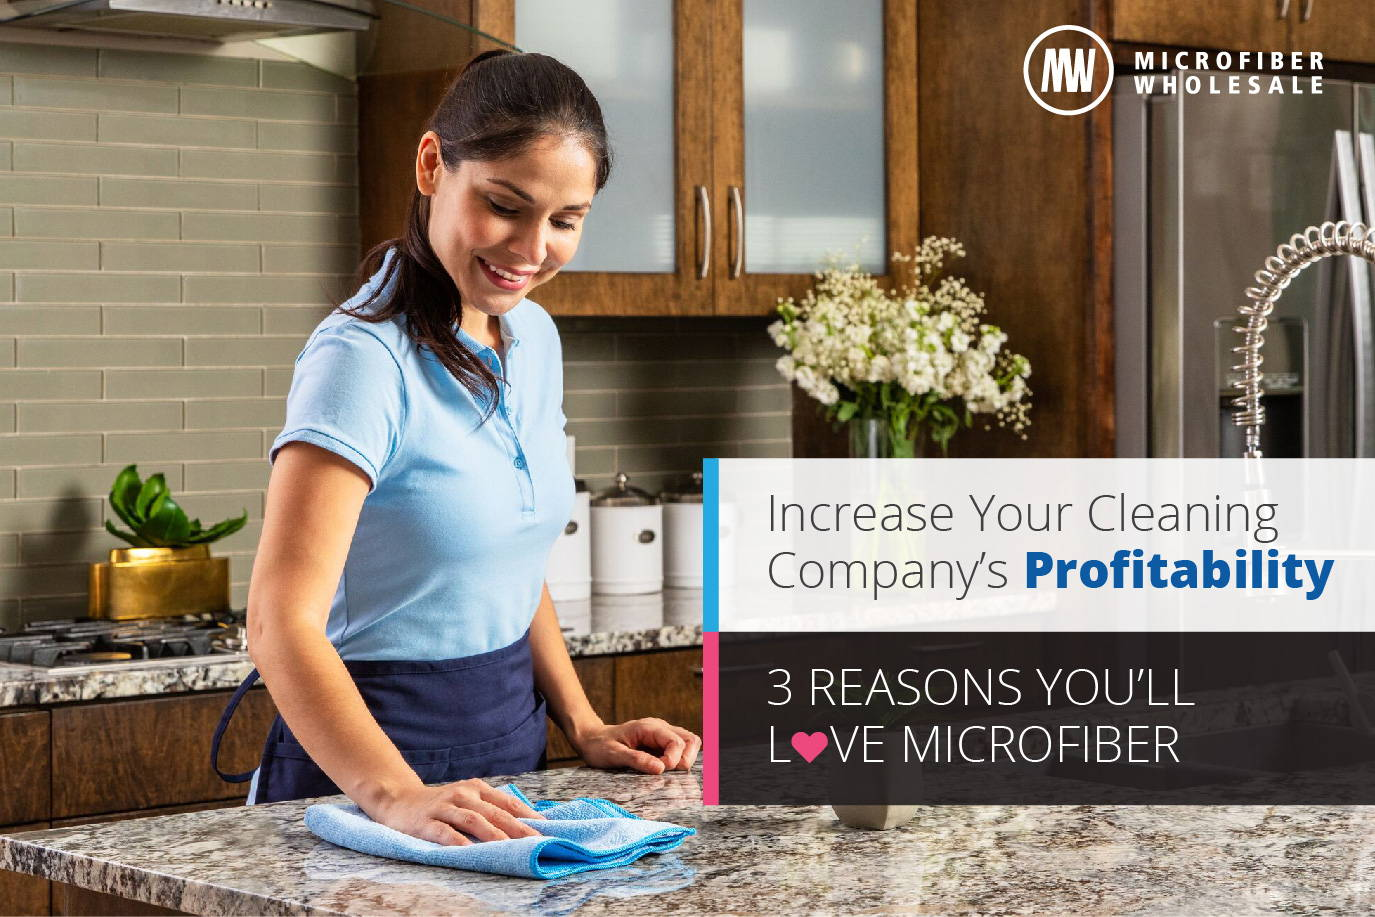 3 BENEFITS OF MICROFIBER THAT GROW YOUR CLEANING BUSINESS